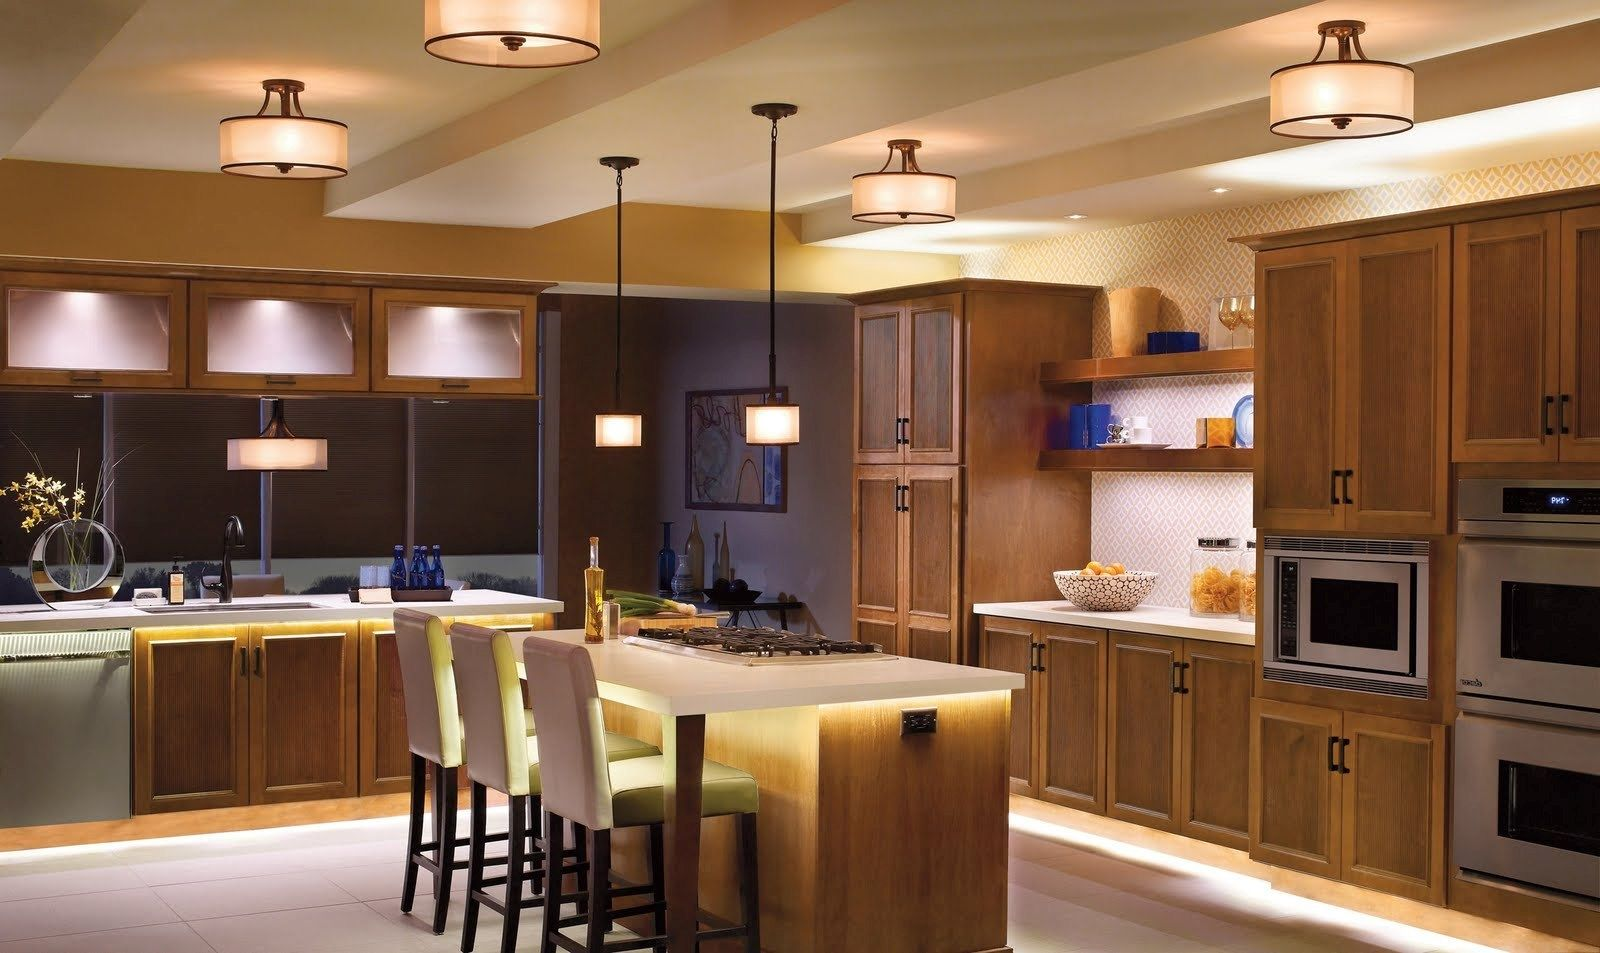 Best Kitchen Ceiling Light Fixture